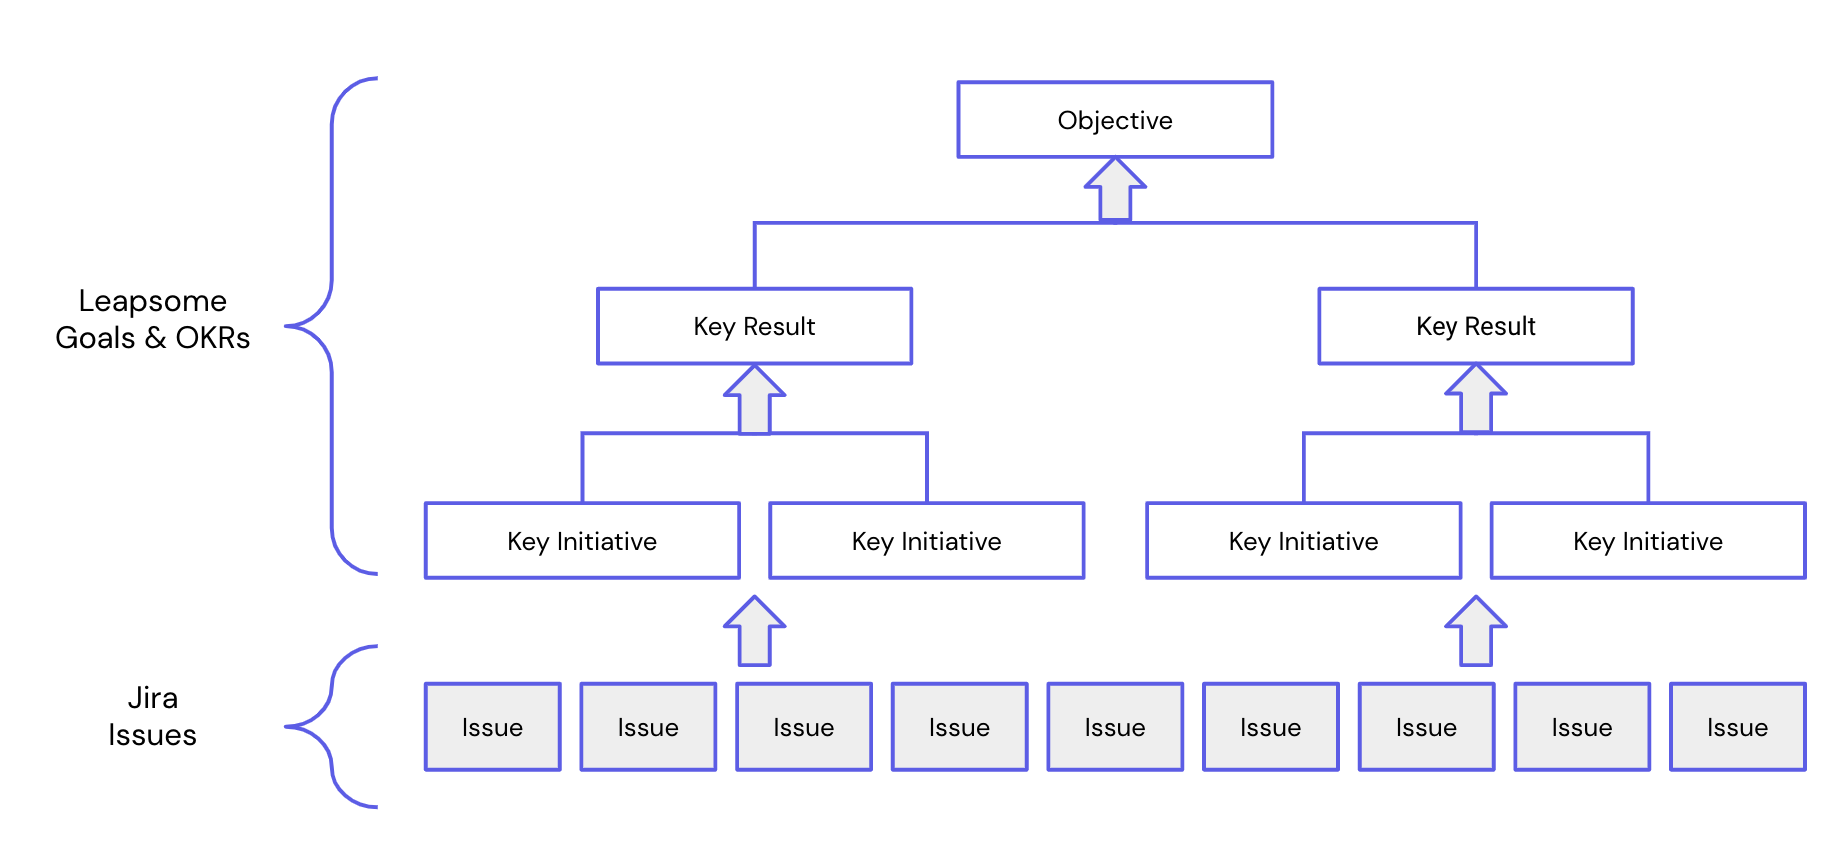 A diagram showing how Jira issues can be connected Leapsome goals